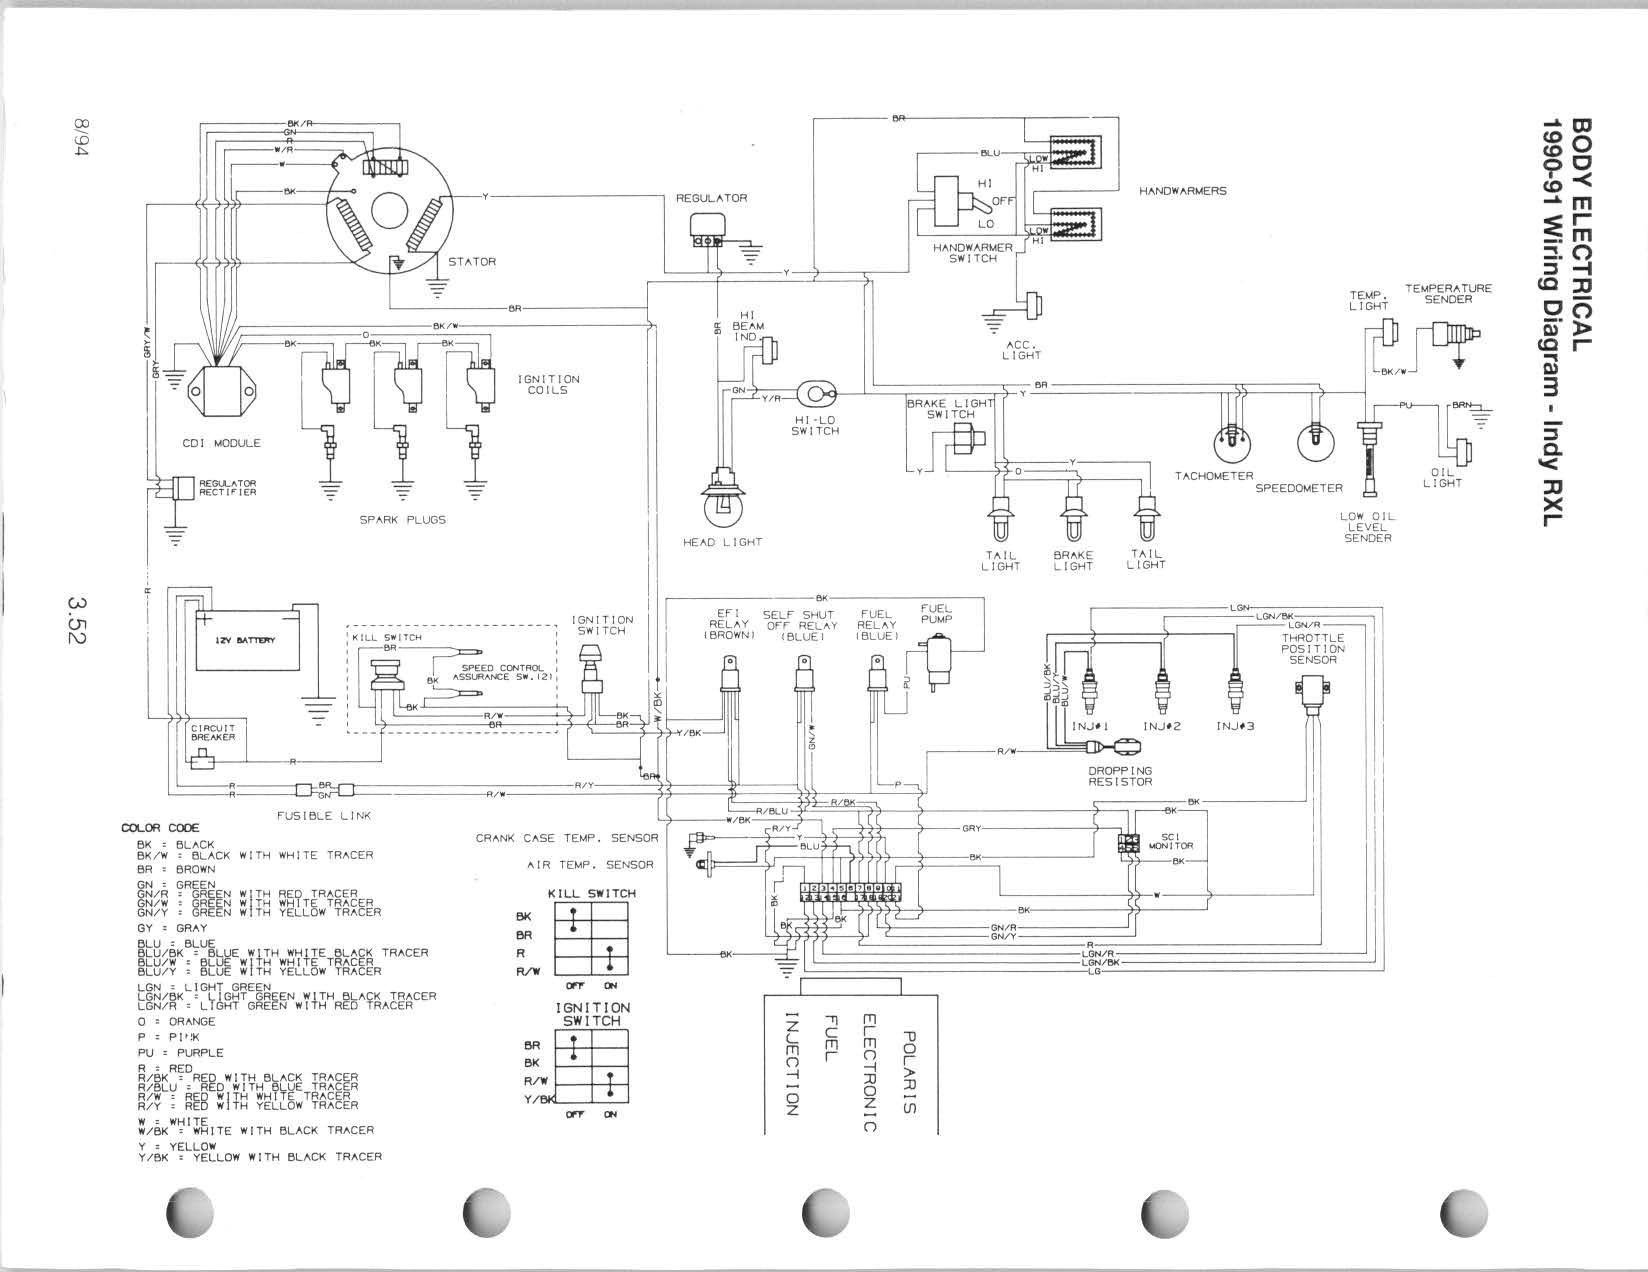 acura fuel pump diagram polaris ranger fuel pump wiring diagram collection polaris fuel pump diagram